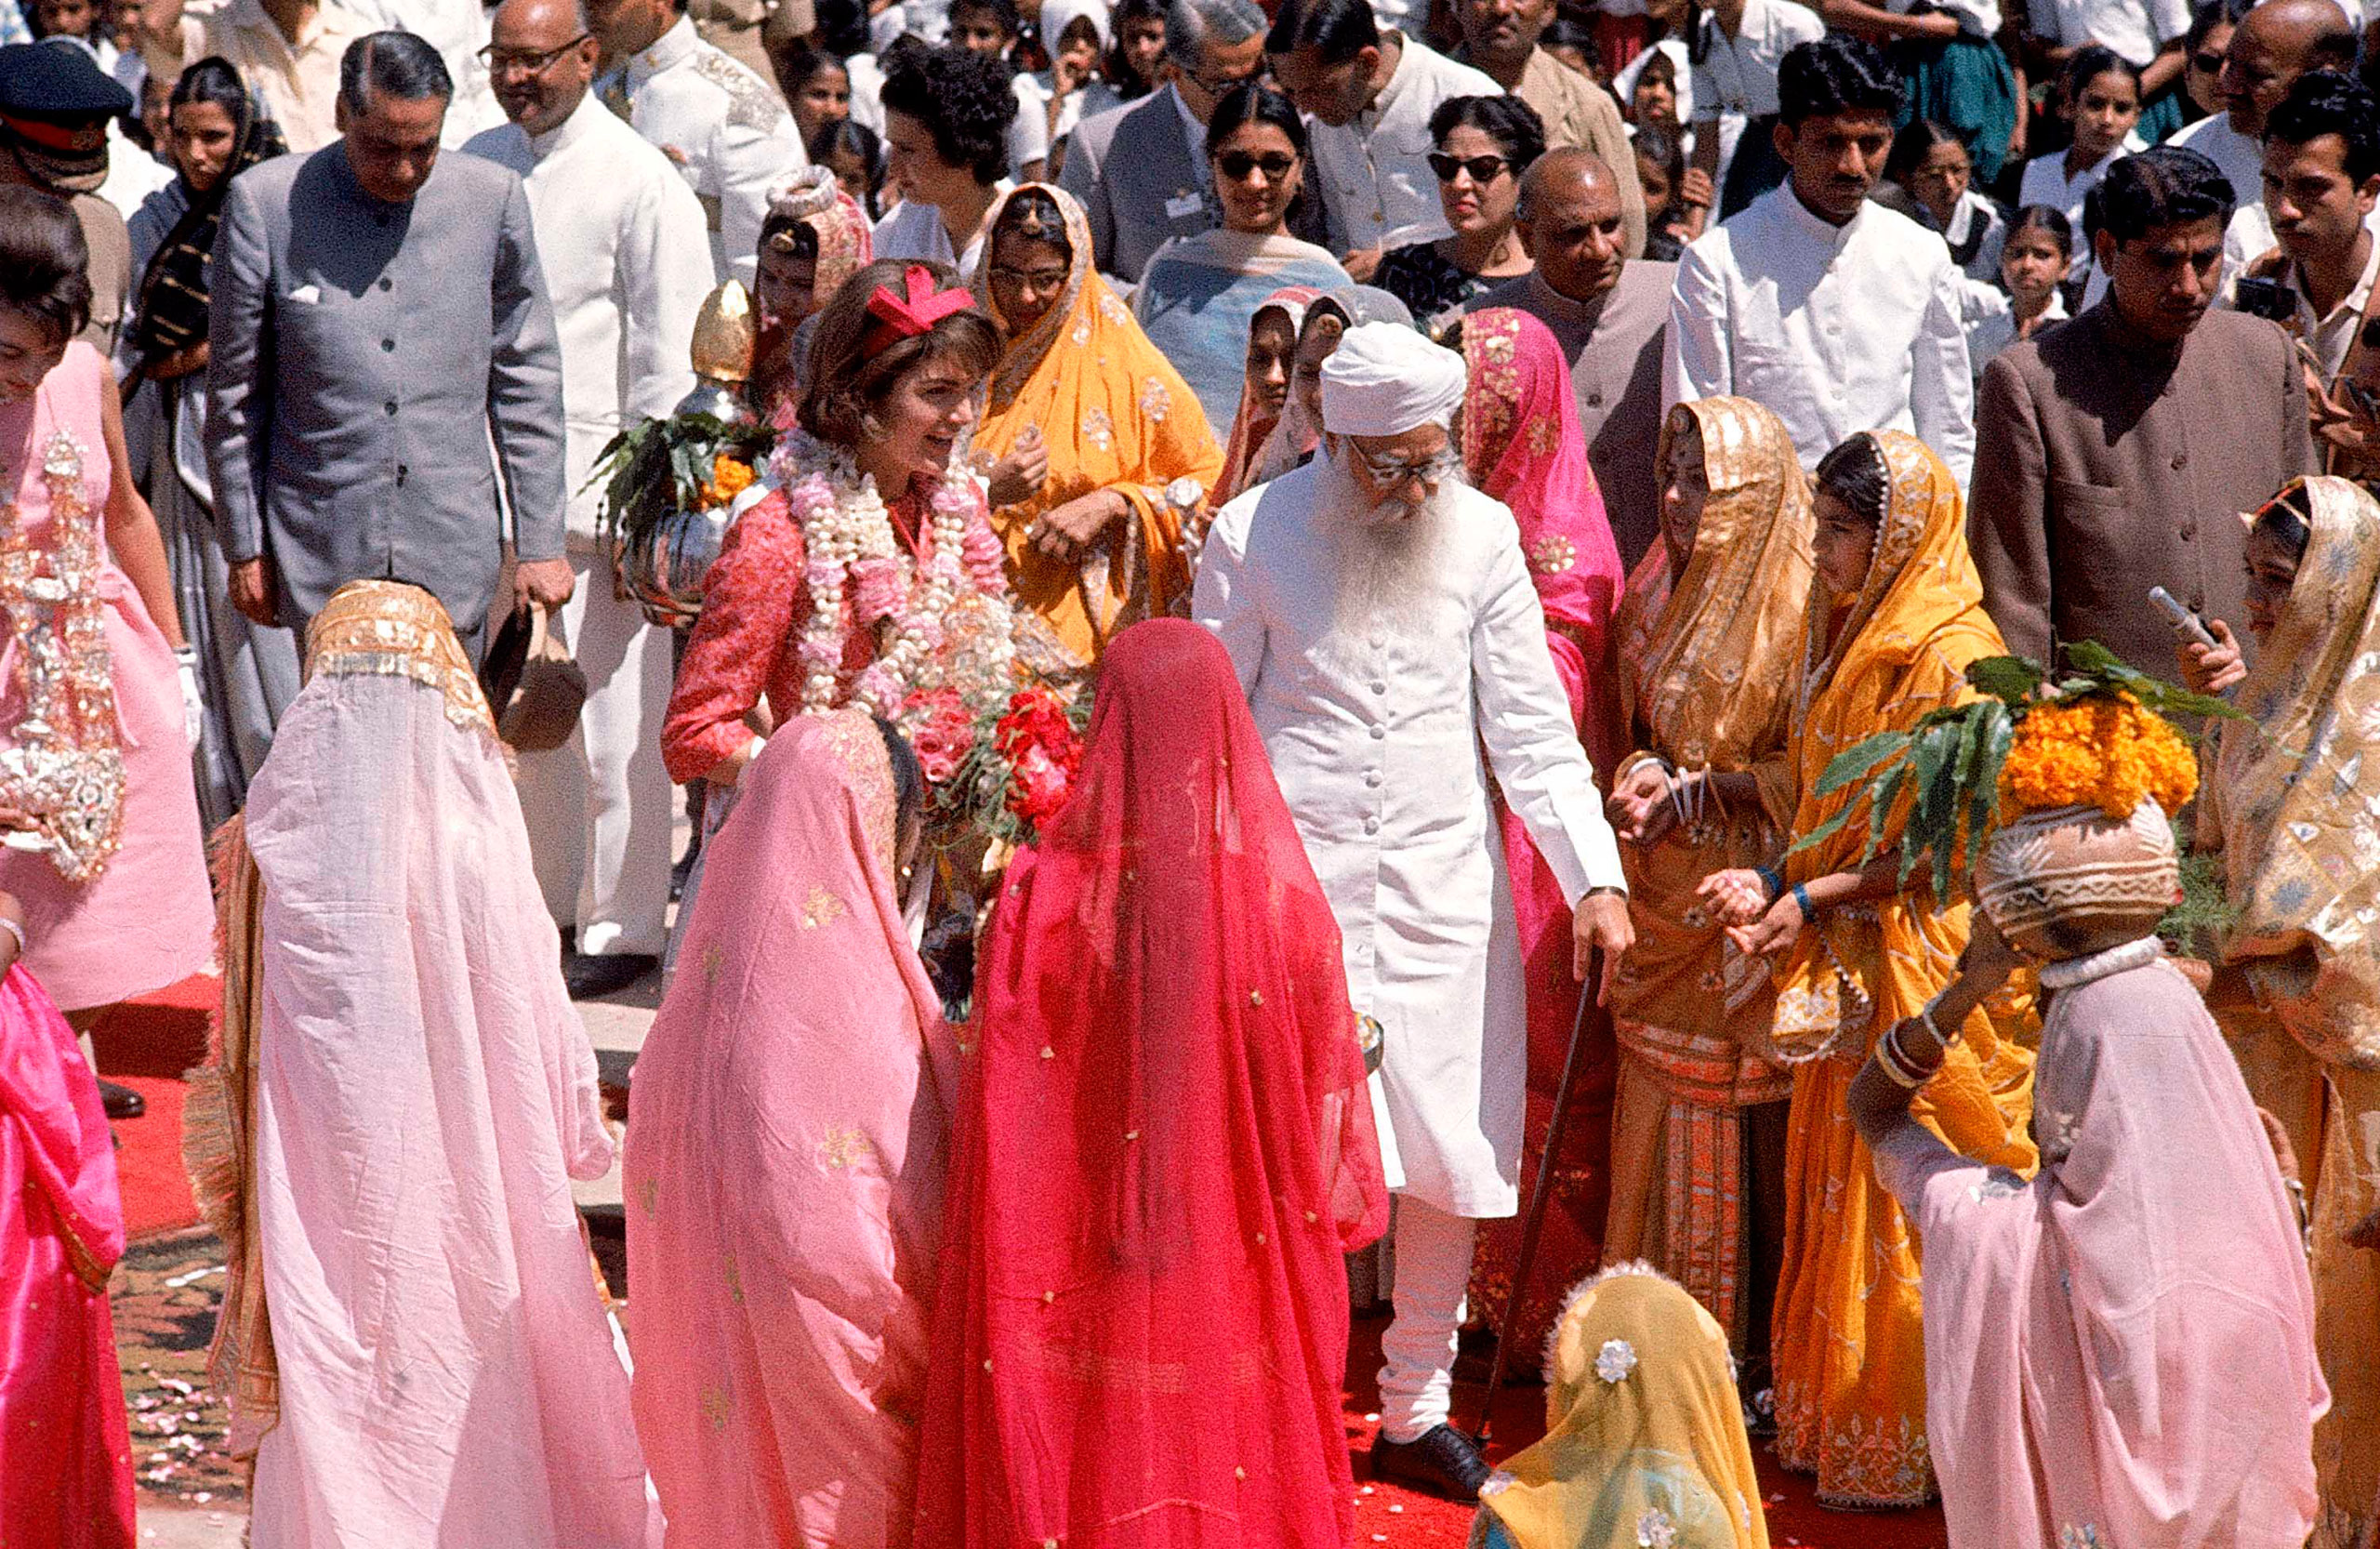 First Lady Jackie Kennedy is greeted by Gov. Gurmukh Nihal Singh, center, at Jaipur Airport in March 1962.